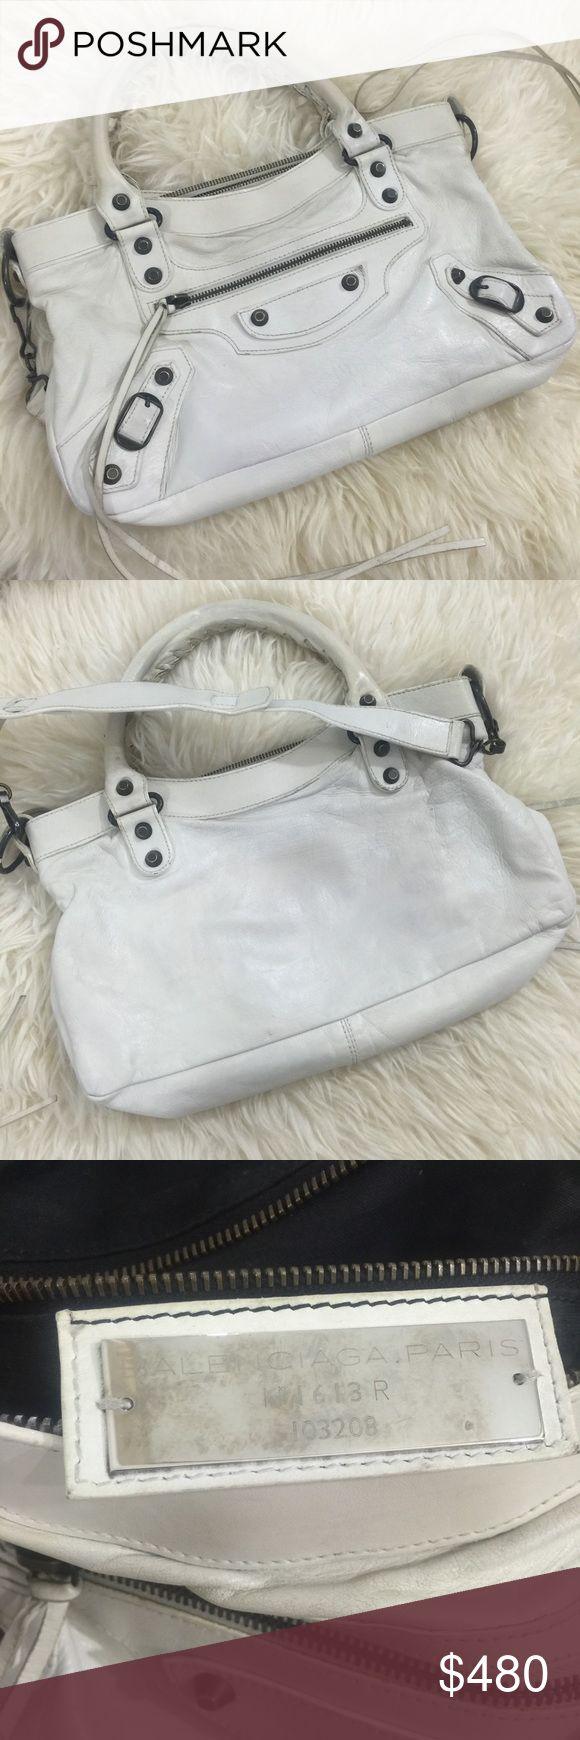 💎 Authentic Balenciaga First Classic Satchel 💎 Authentic guaranteed, by myself and Posh Concierge. Will include Authenticate First certificate for additional $10 (their fee not mine). This bag was professionally retouched and cleaned. The handles have been gently repainted, as leather naturally darkens over time. Gorgeous iconic ultra chic bag in crisp white. Mirror not included, shoulder strap included. Balenciaga Bags Satchels